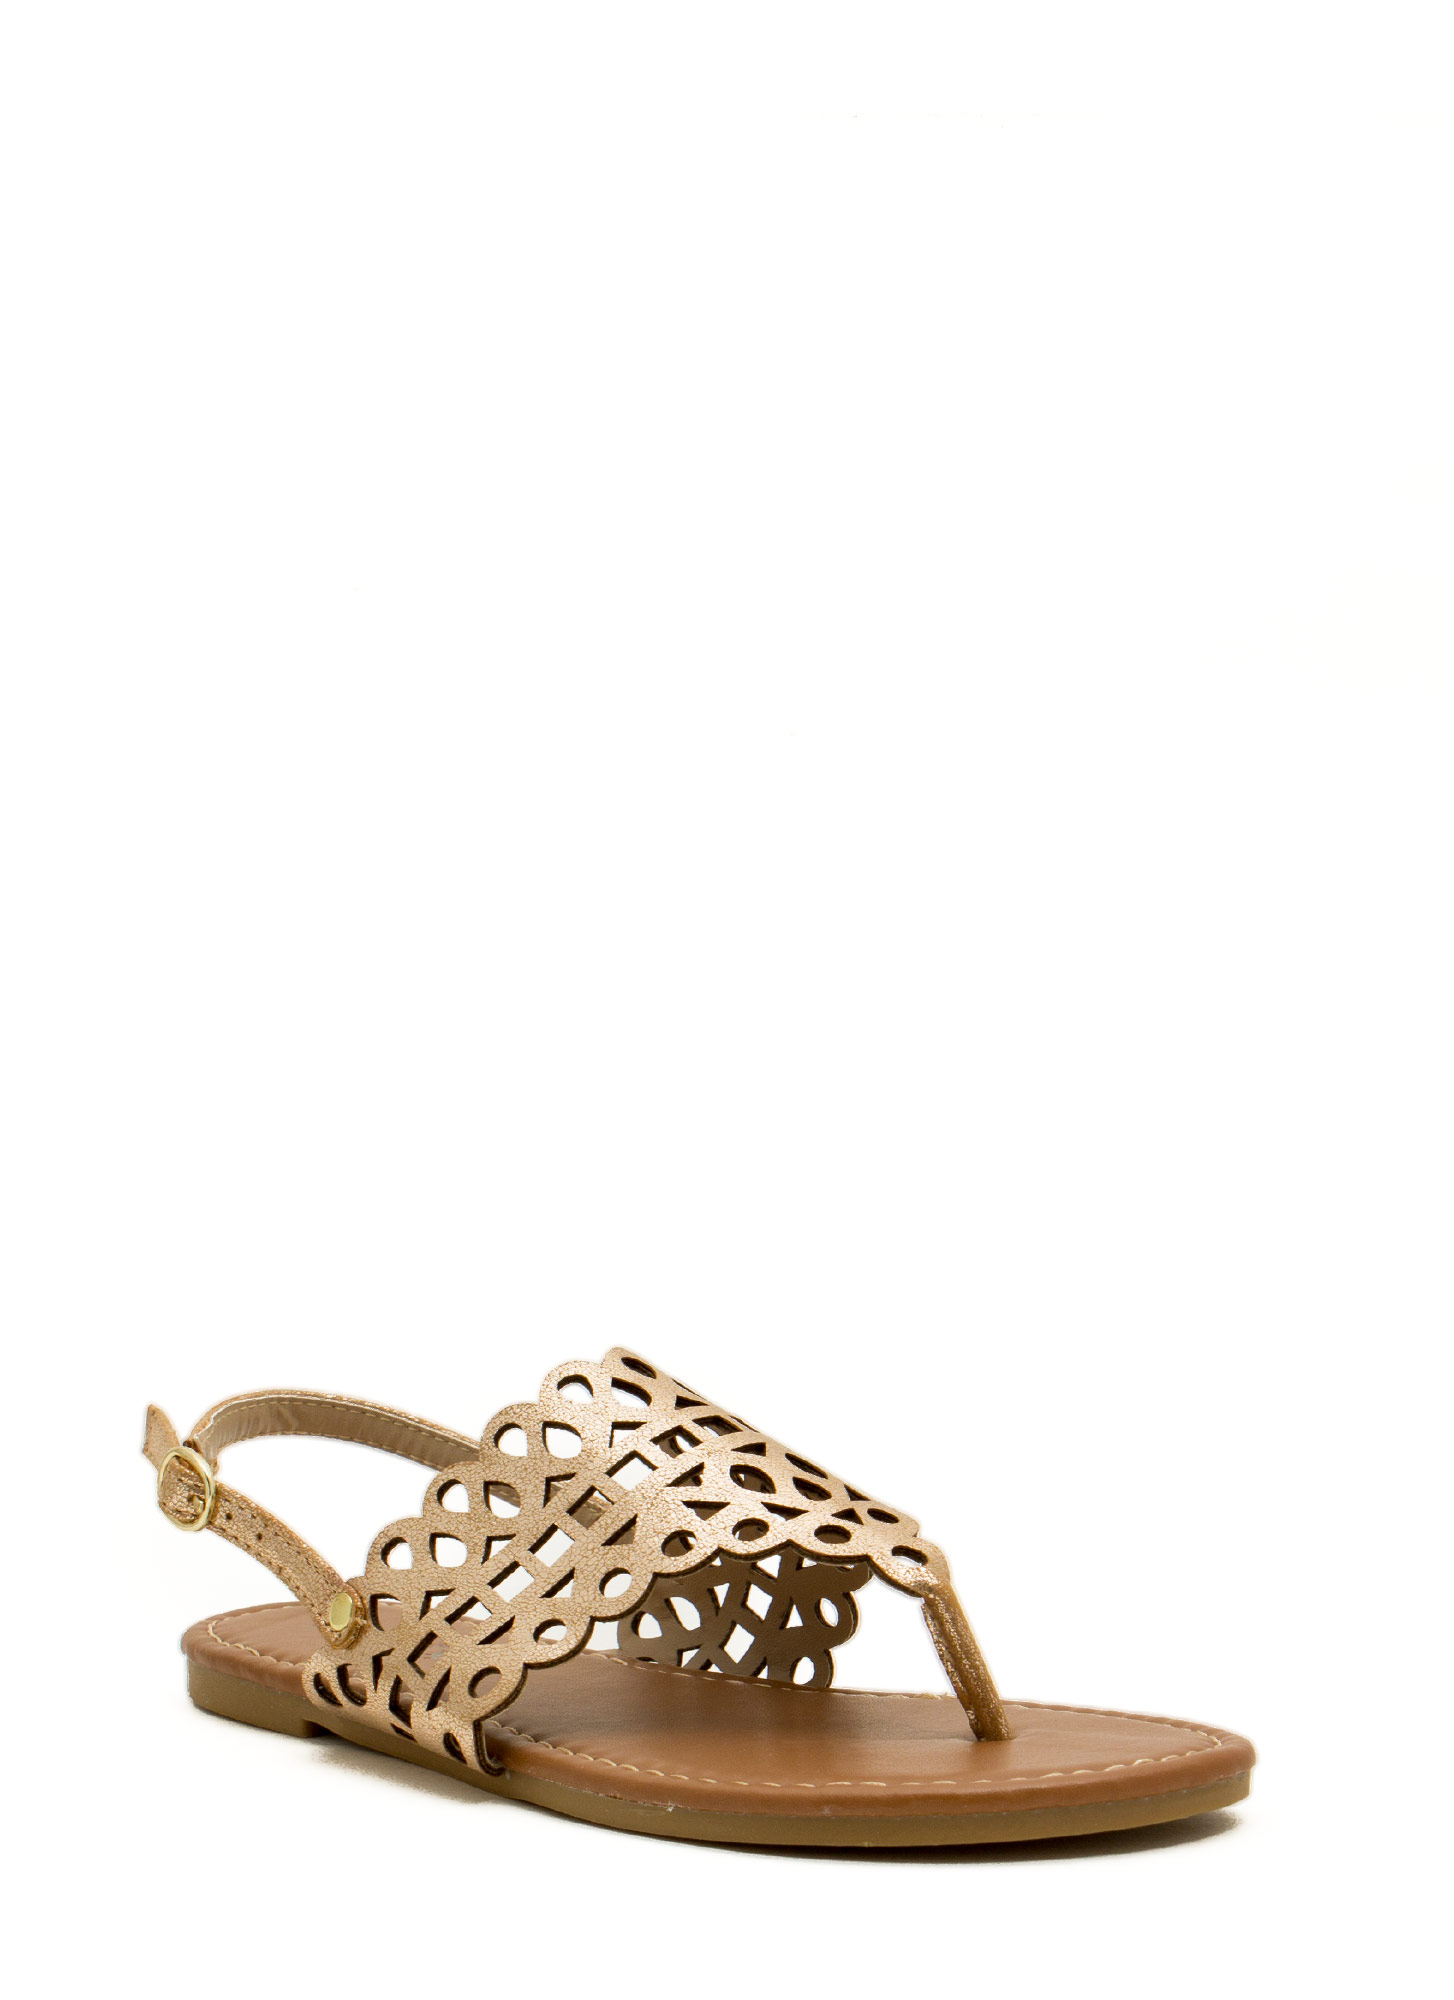 Made The Cut-Out Thong Sandals GOLD